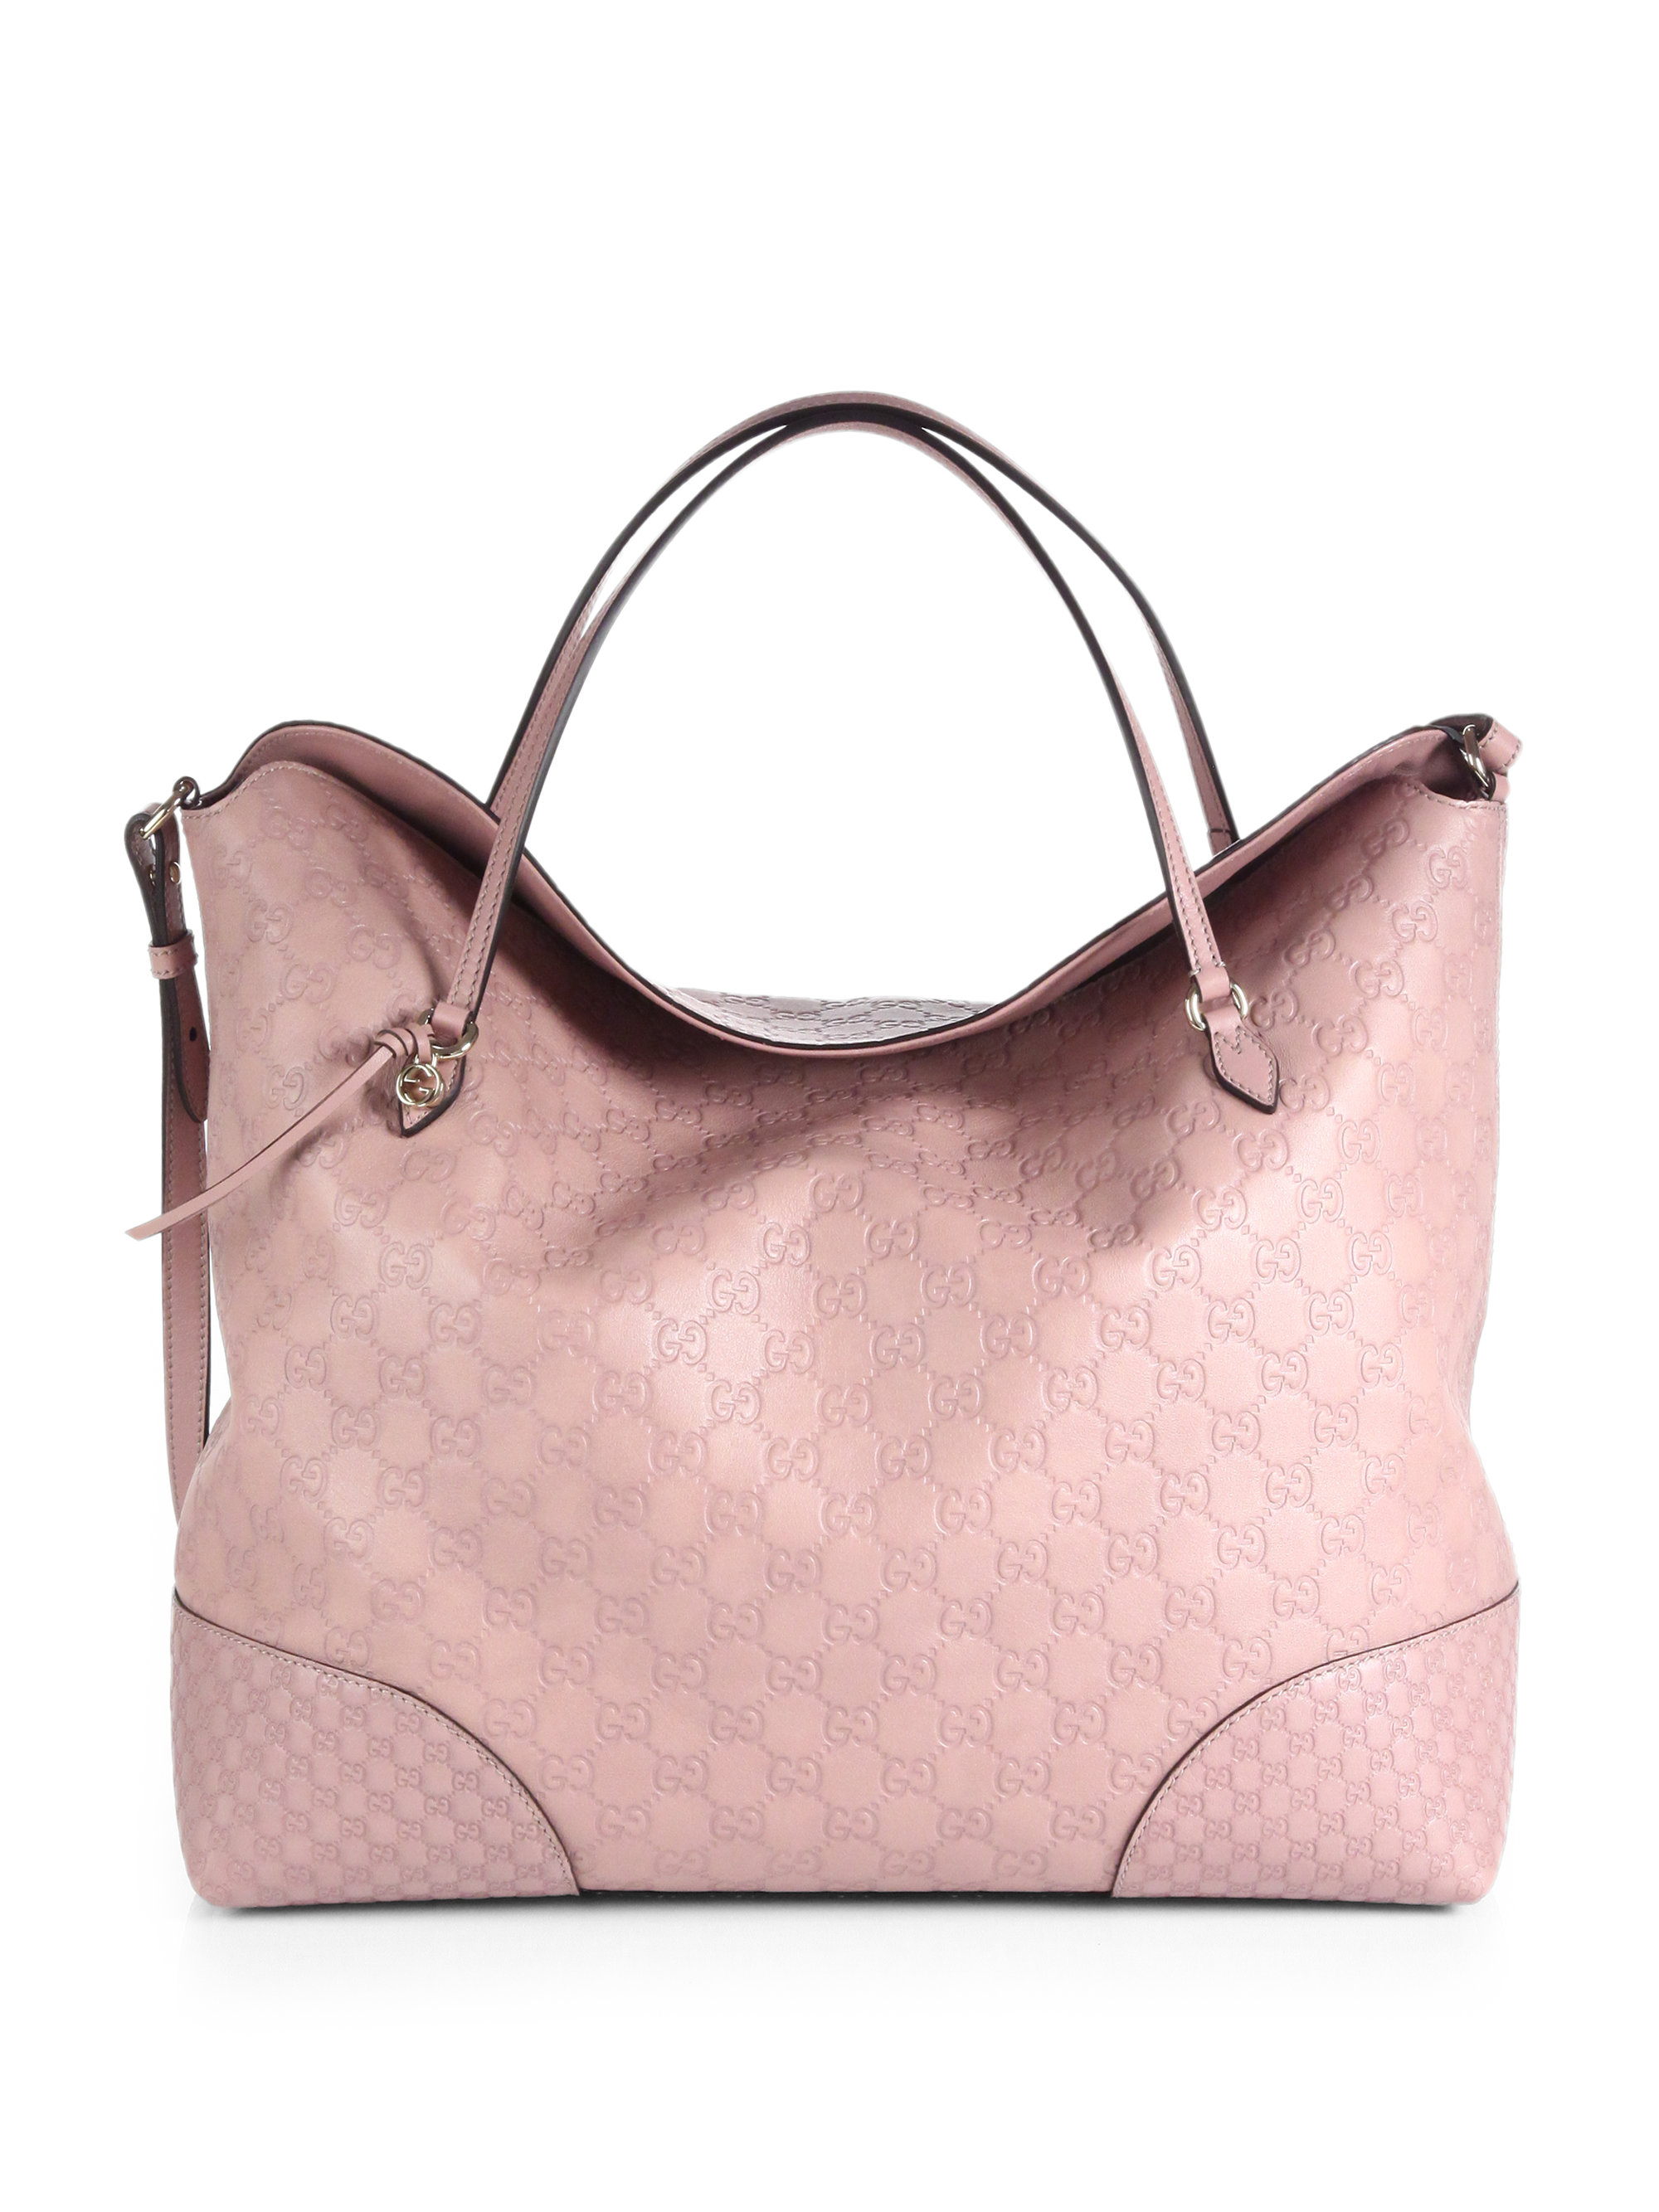 3ace73c64183 Gucci Bree Ssima Leather Tote in Pink - Lyst